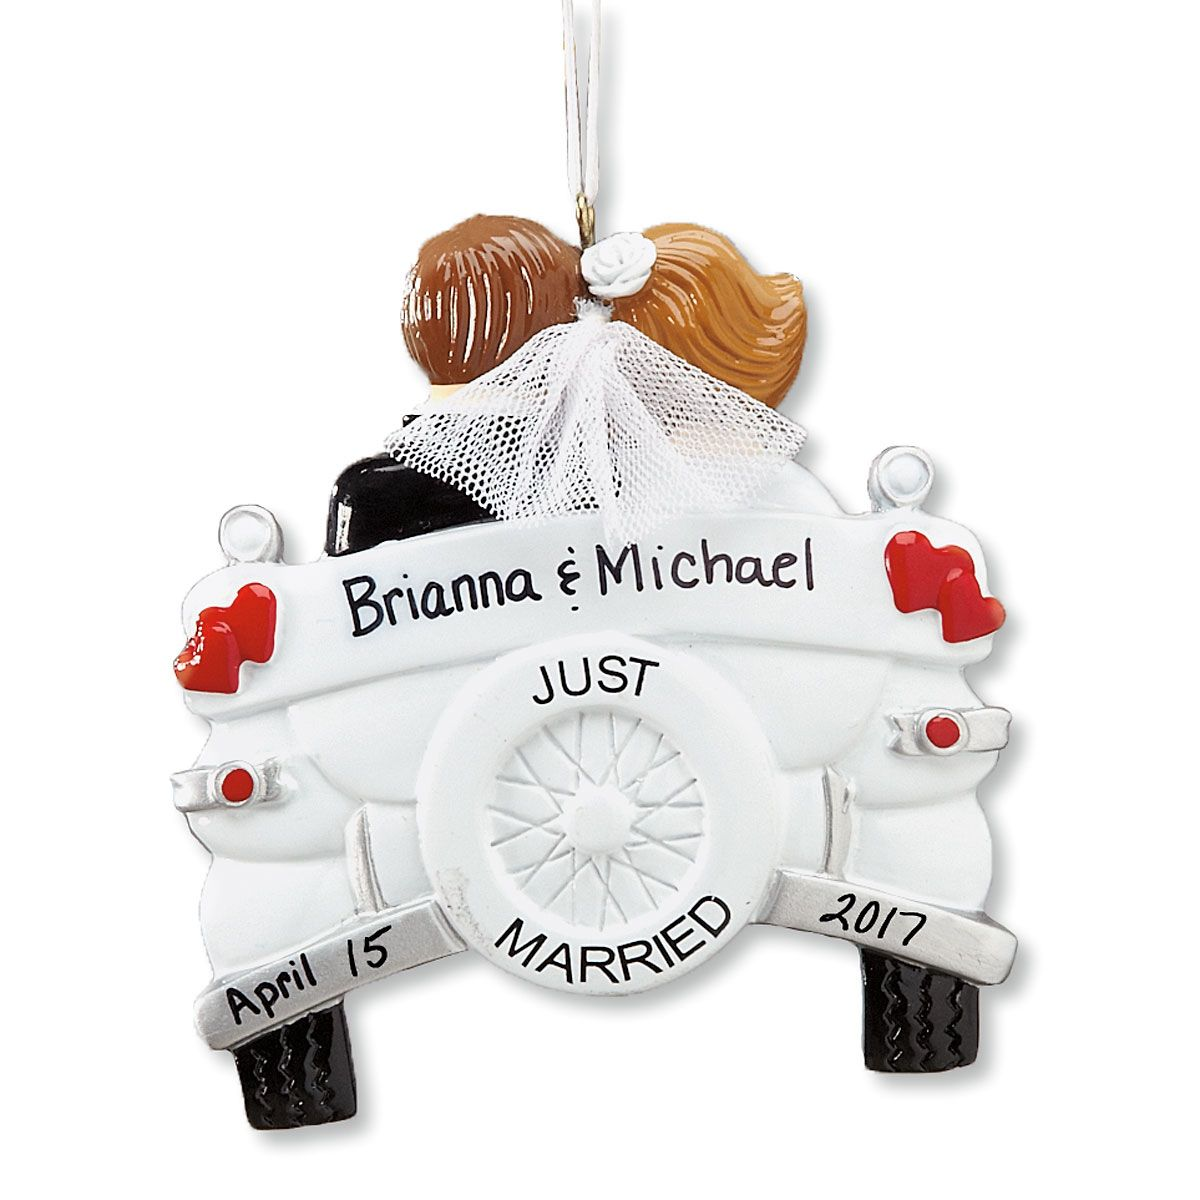 Just Married Personalized Christmas Ornament